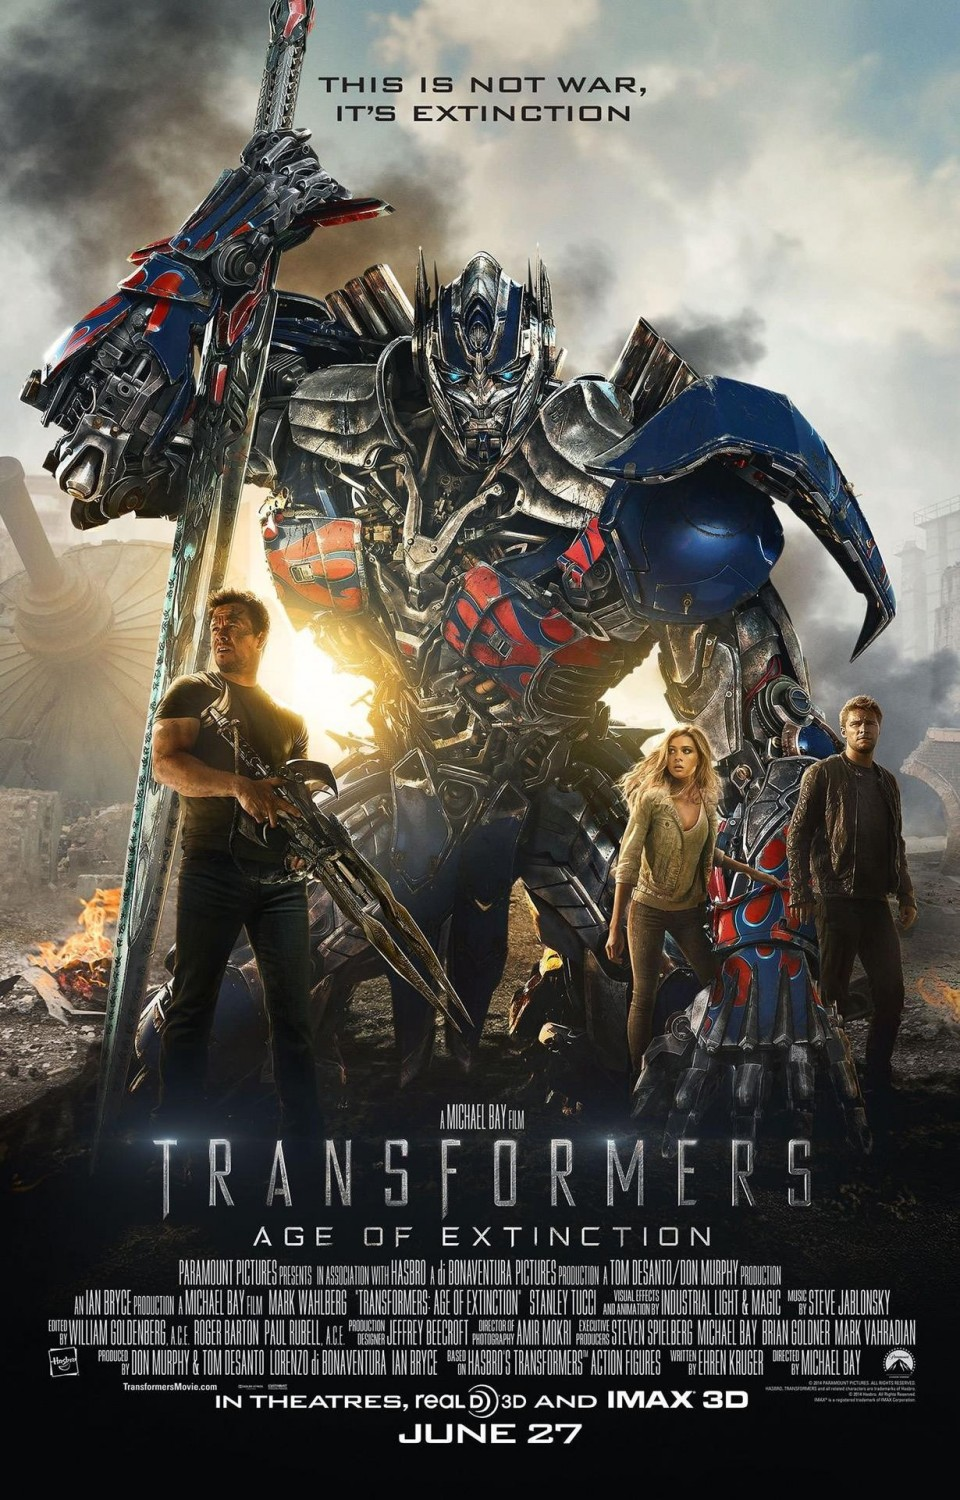 Transformers Age of Extinction-Official Poster Banner PROMO XLG-21MAIO2014-01